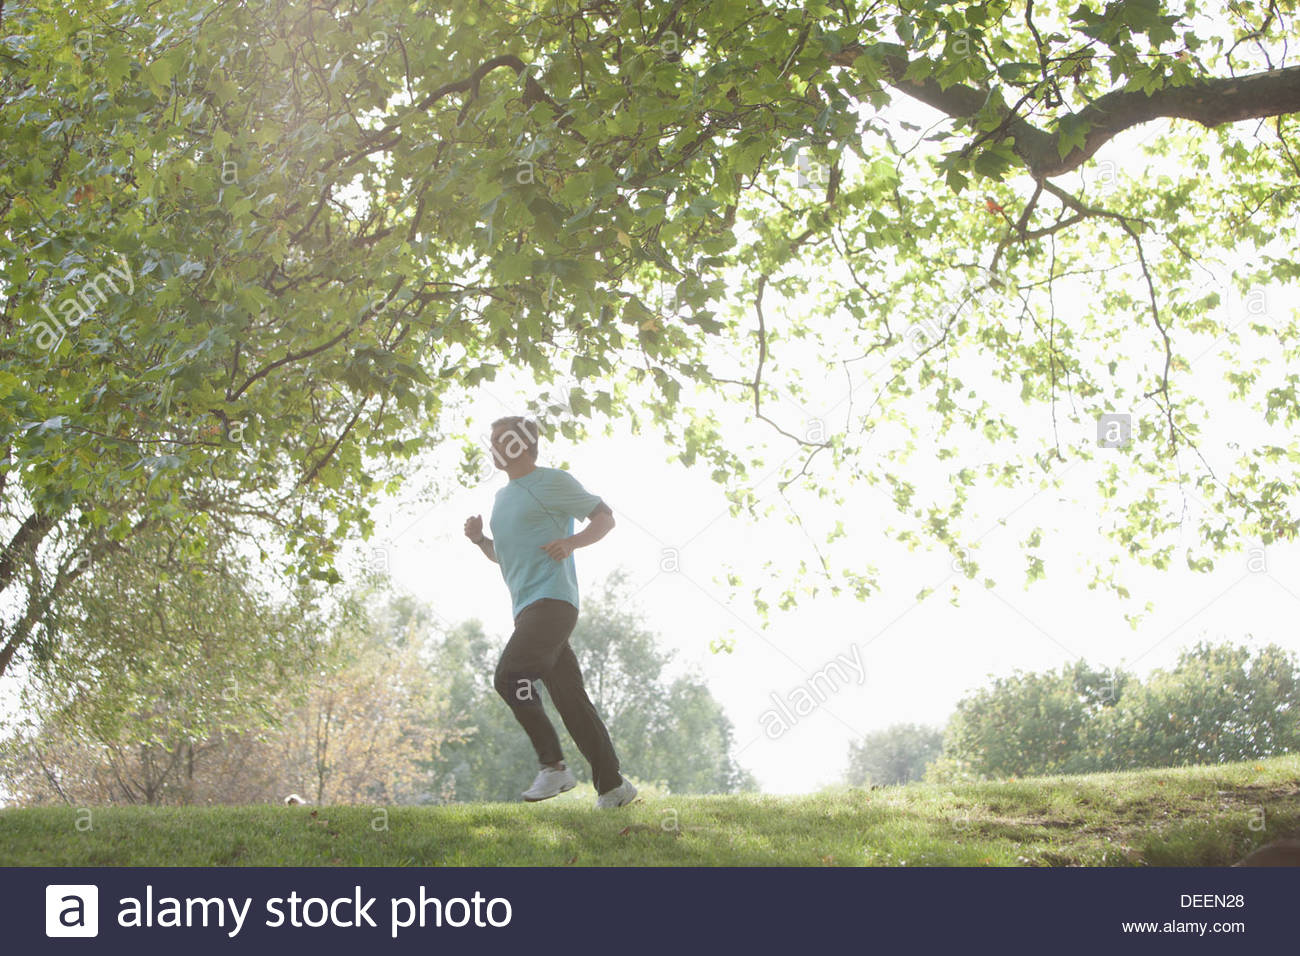 Determined man jogging outdoors - Stock Image